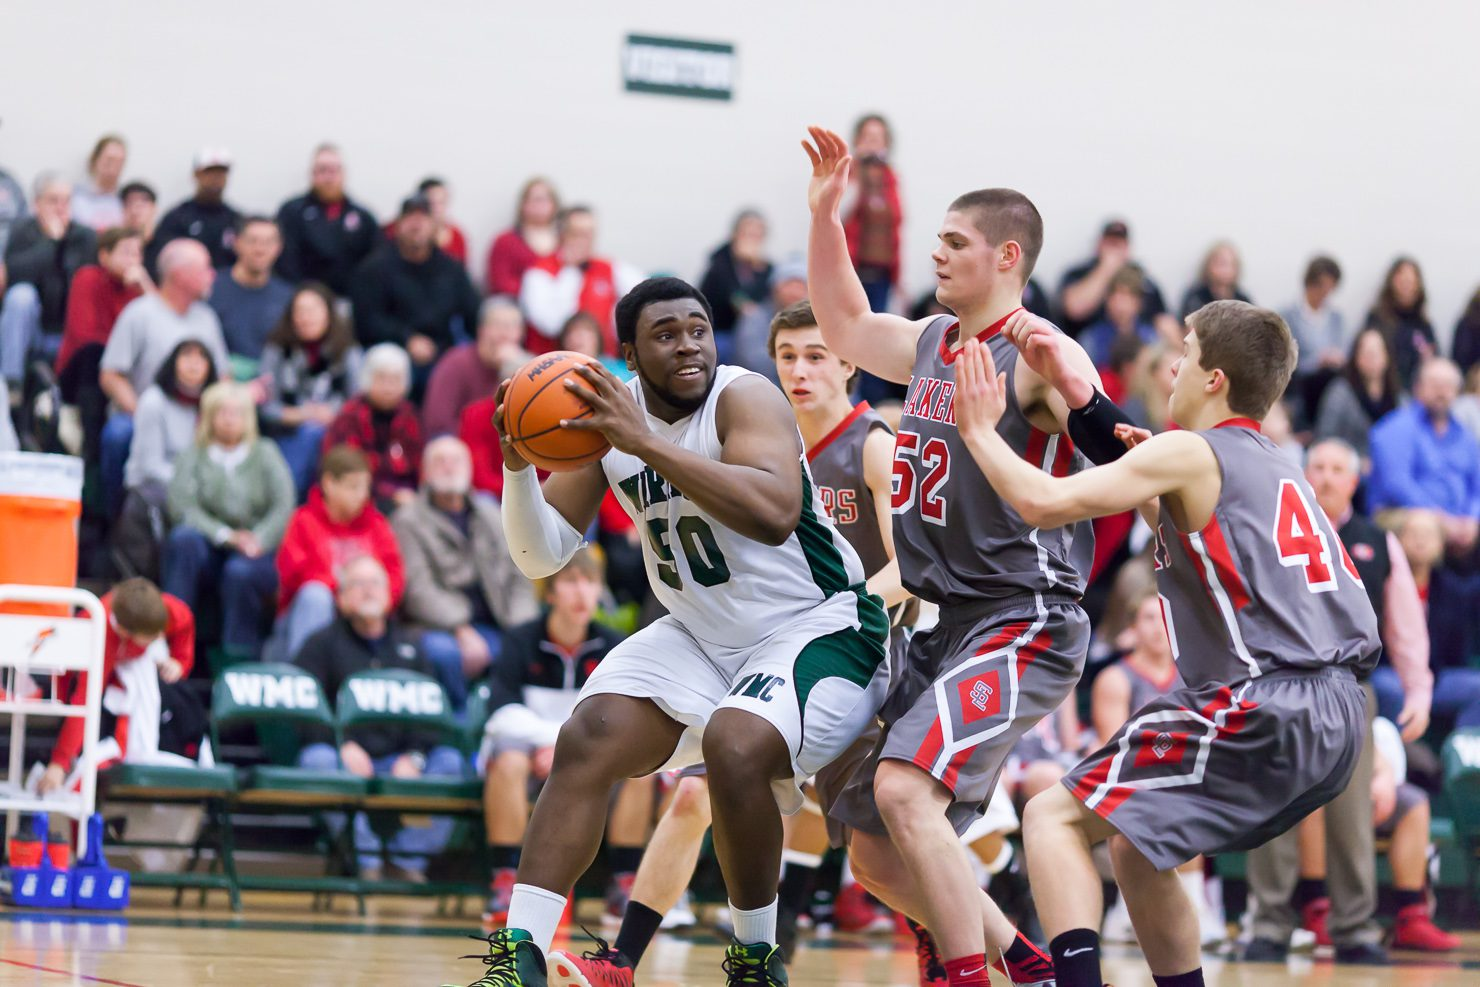 Spring Lake's quick start too much for Western Michigan Christian in boys basketball